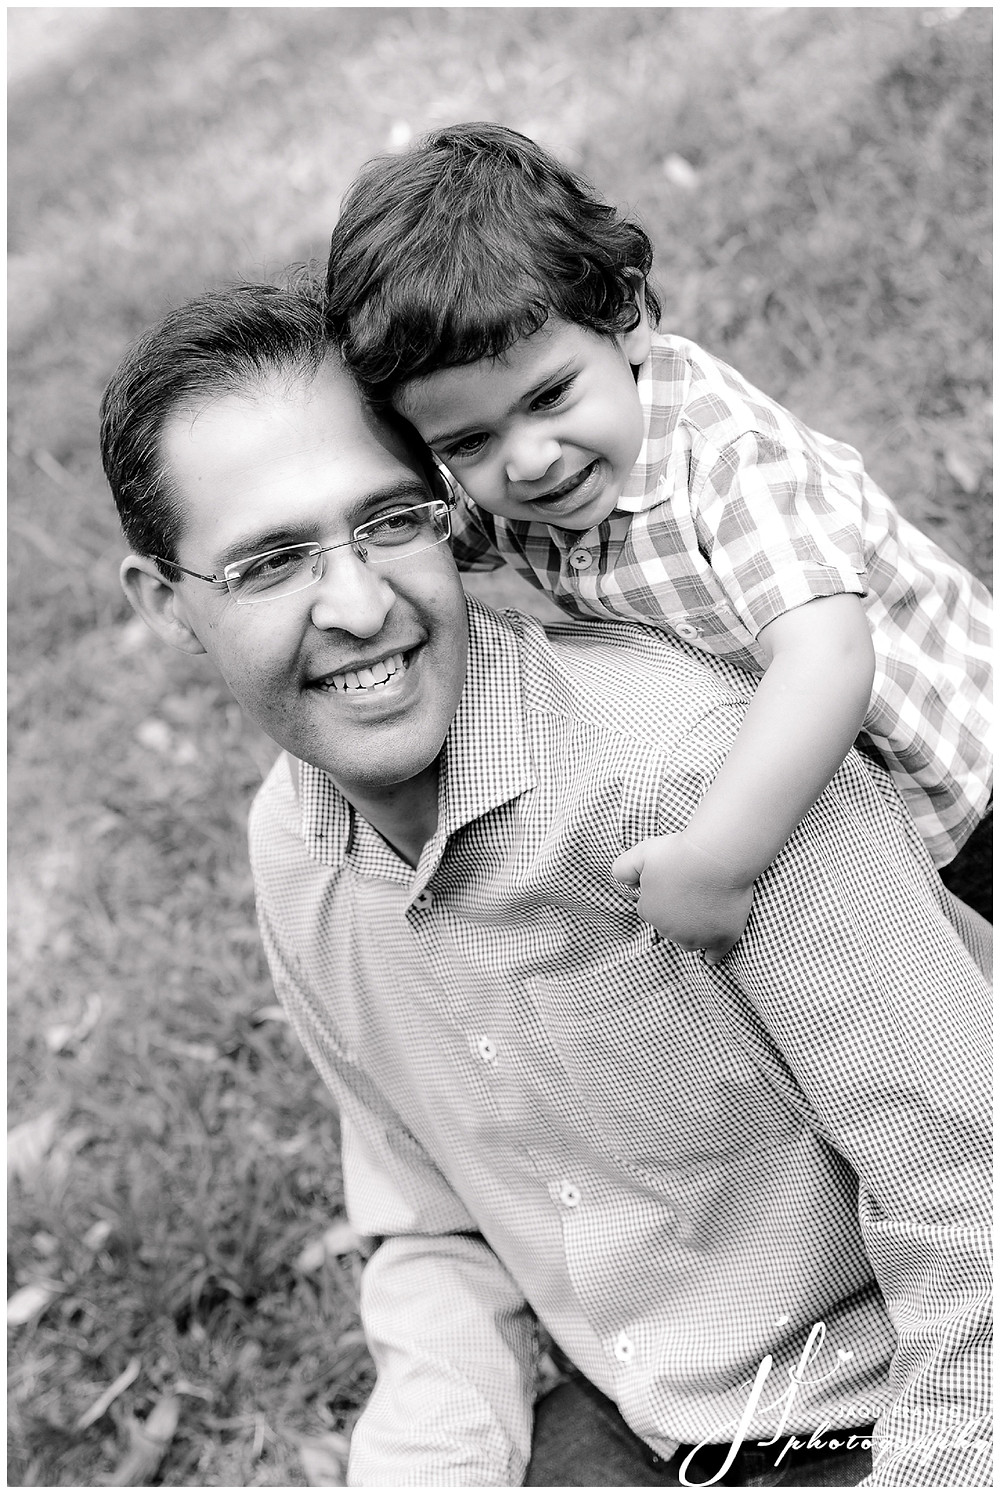 Daddy & me photographed by jaqui Franco Photography